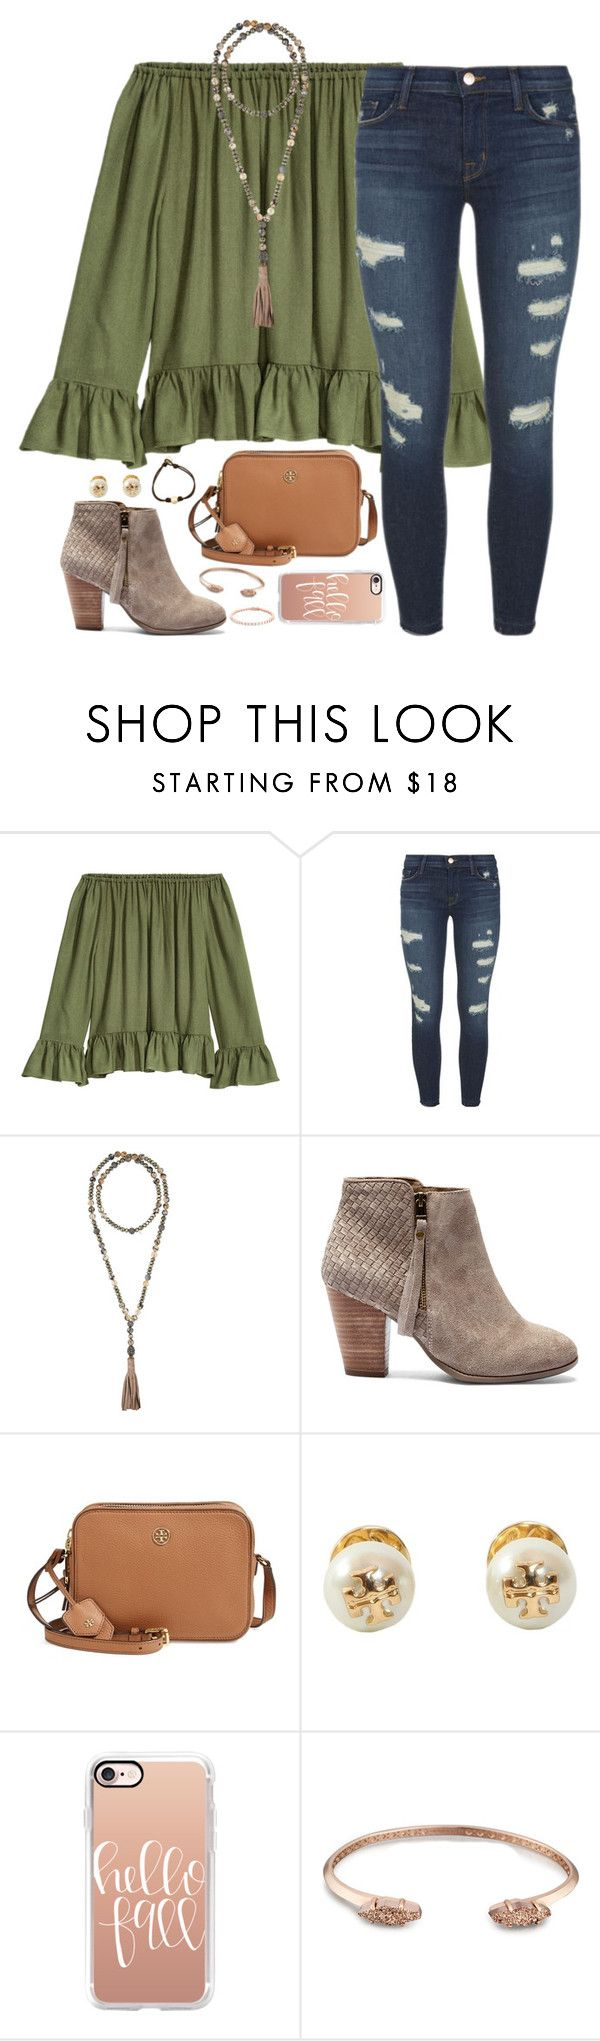 """when you're a downie, eat a brownie"" by kaley-ii ❤ liked on Polyvore featuring J Brand, Hipchik, Sole Society, Tory Burch, Casetify and Kendra Scott"